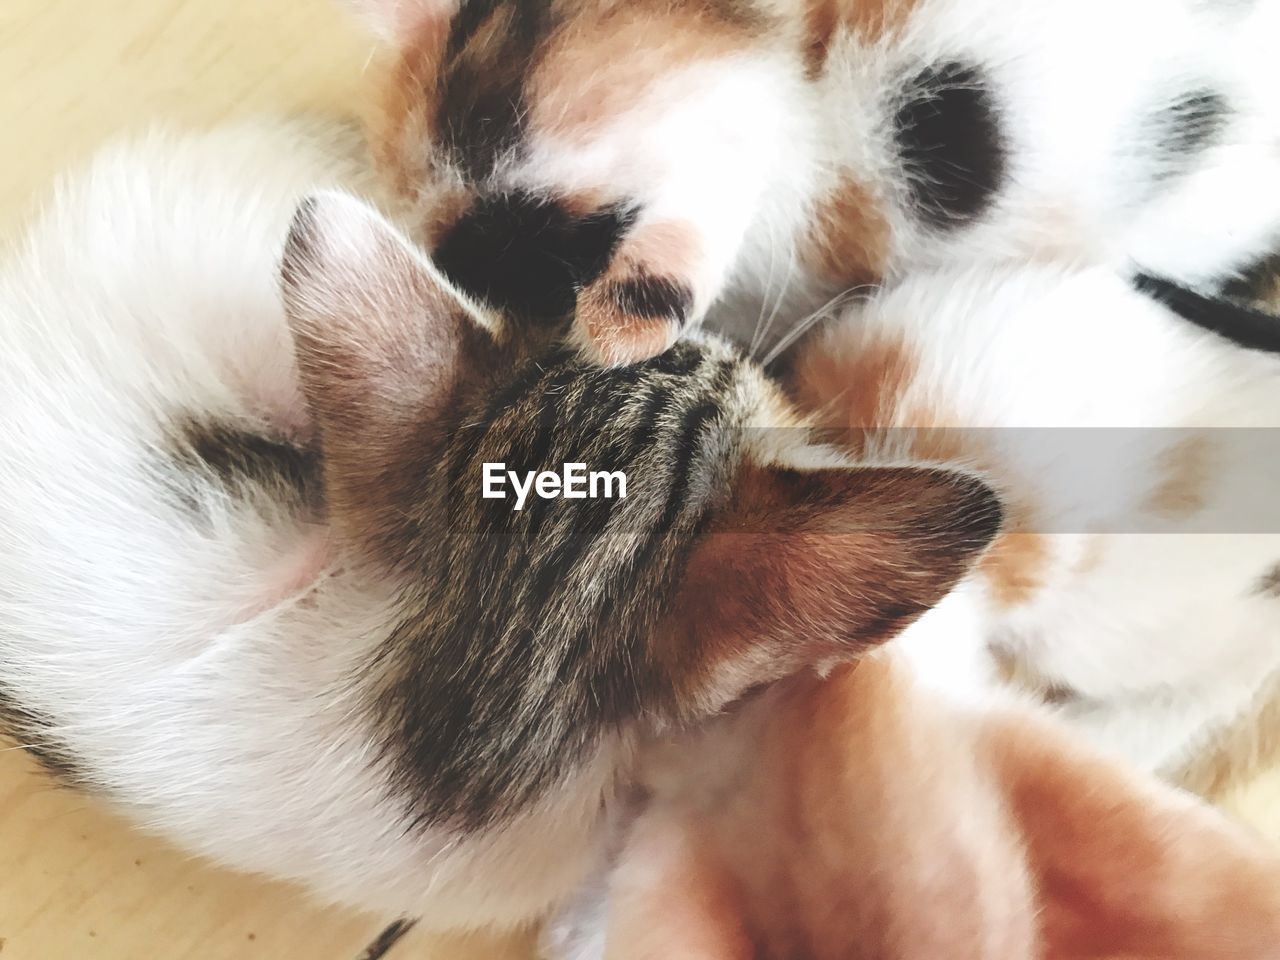 animal themes, mammal, animal, domestic animals, domestic, pets, one animal, cat, feline, vertebrate, relaxation, domestic cat, sleeping, close-up, indoors, no people, high angle view, young animal, resting, kitten, whisker, animal family